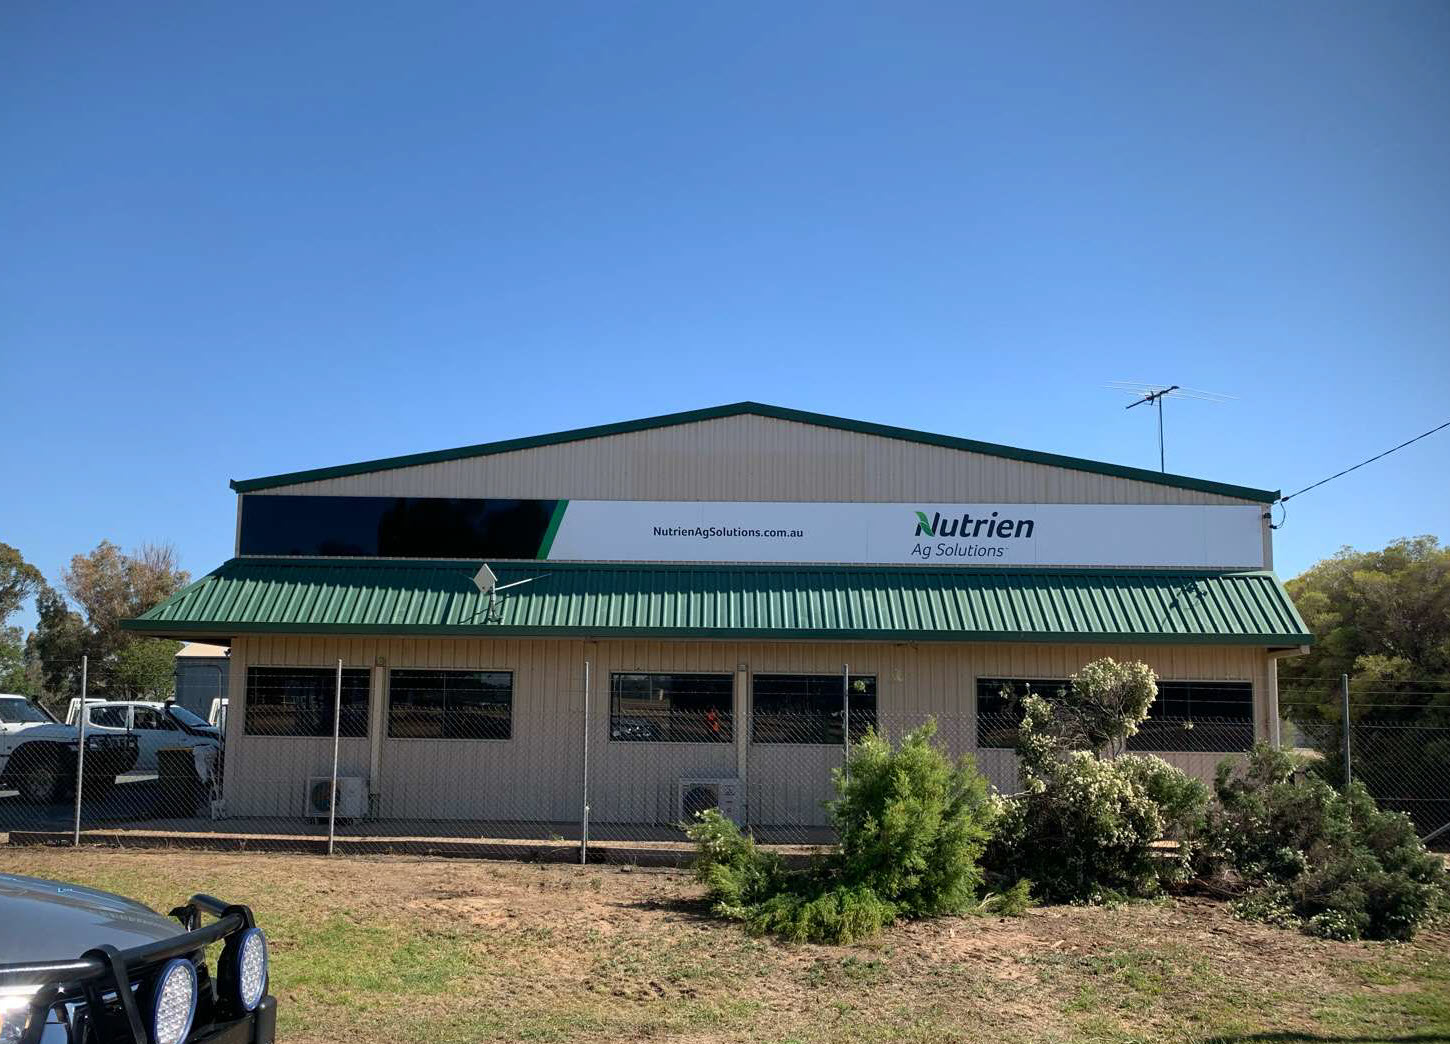 Nutrien Ag Solutions - Lockhart, NSW 2656 - (02) 6920 5583 | ShowMeLocal.com